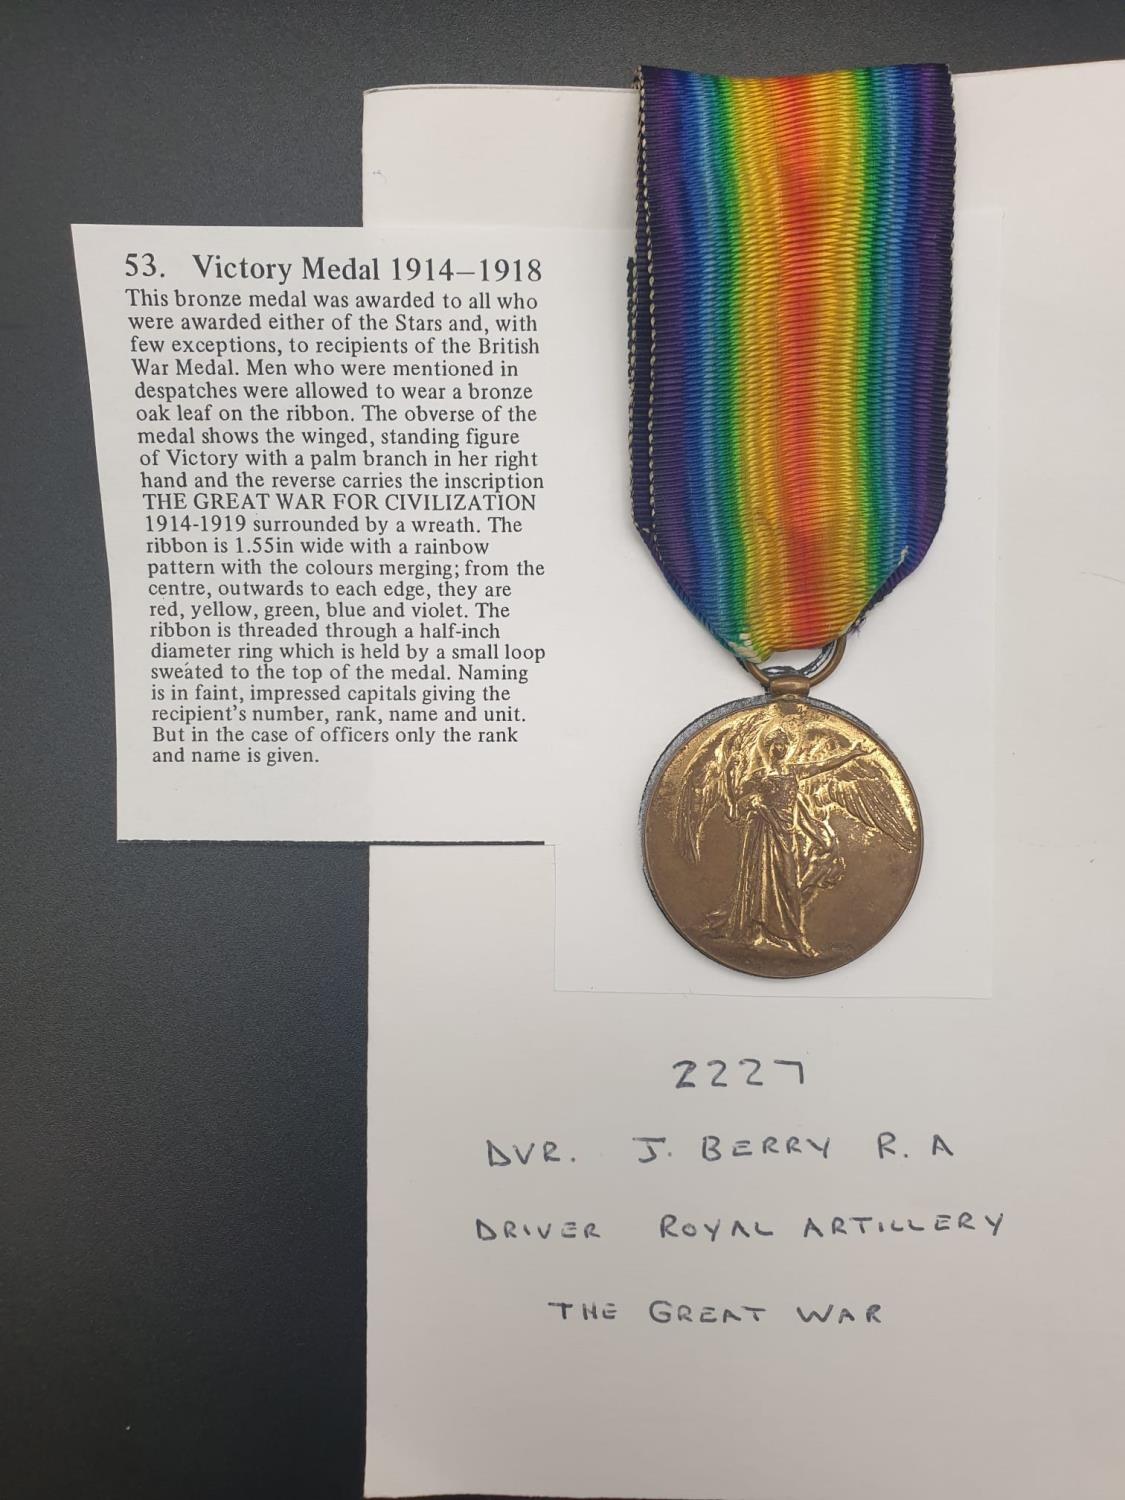 THE GREAT WAR FOR CIVILISATION 1914-18 MEDAL PRESENTED TO DVR J BERRY ROYAL ARTILLERY WITH